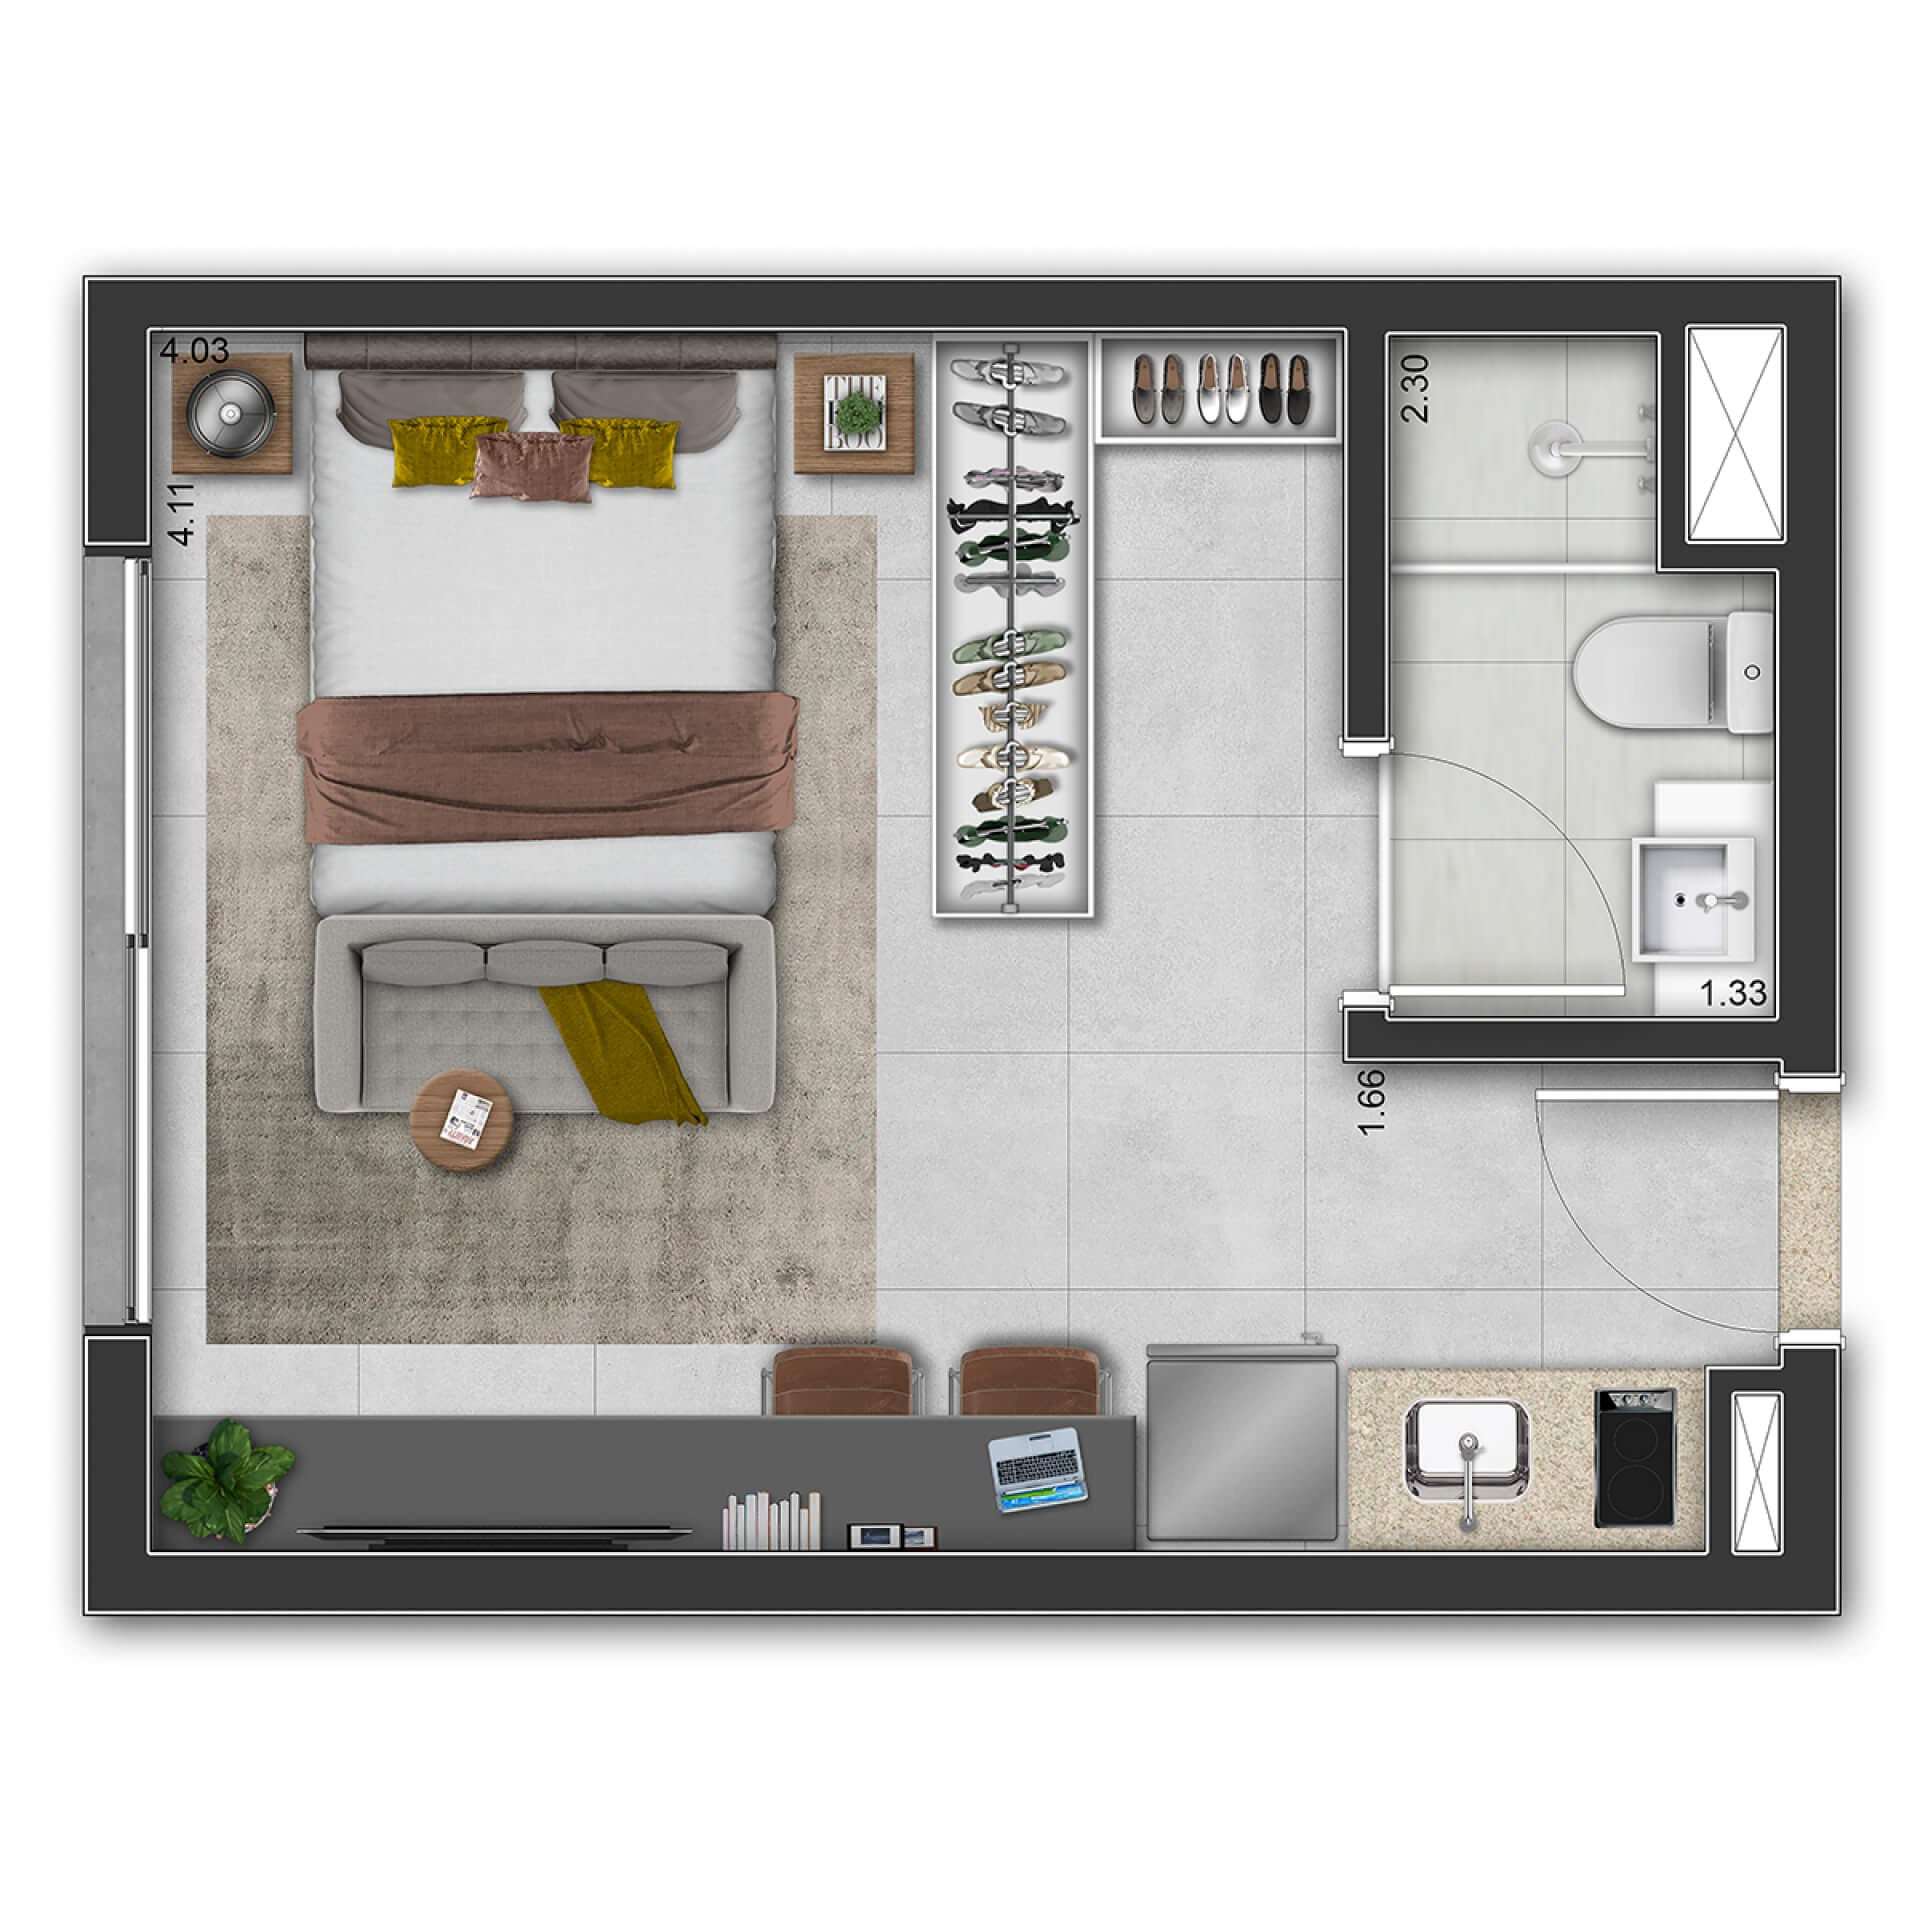 Planta do D. Stay Ibirapuera. floorplan